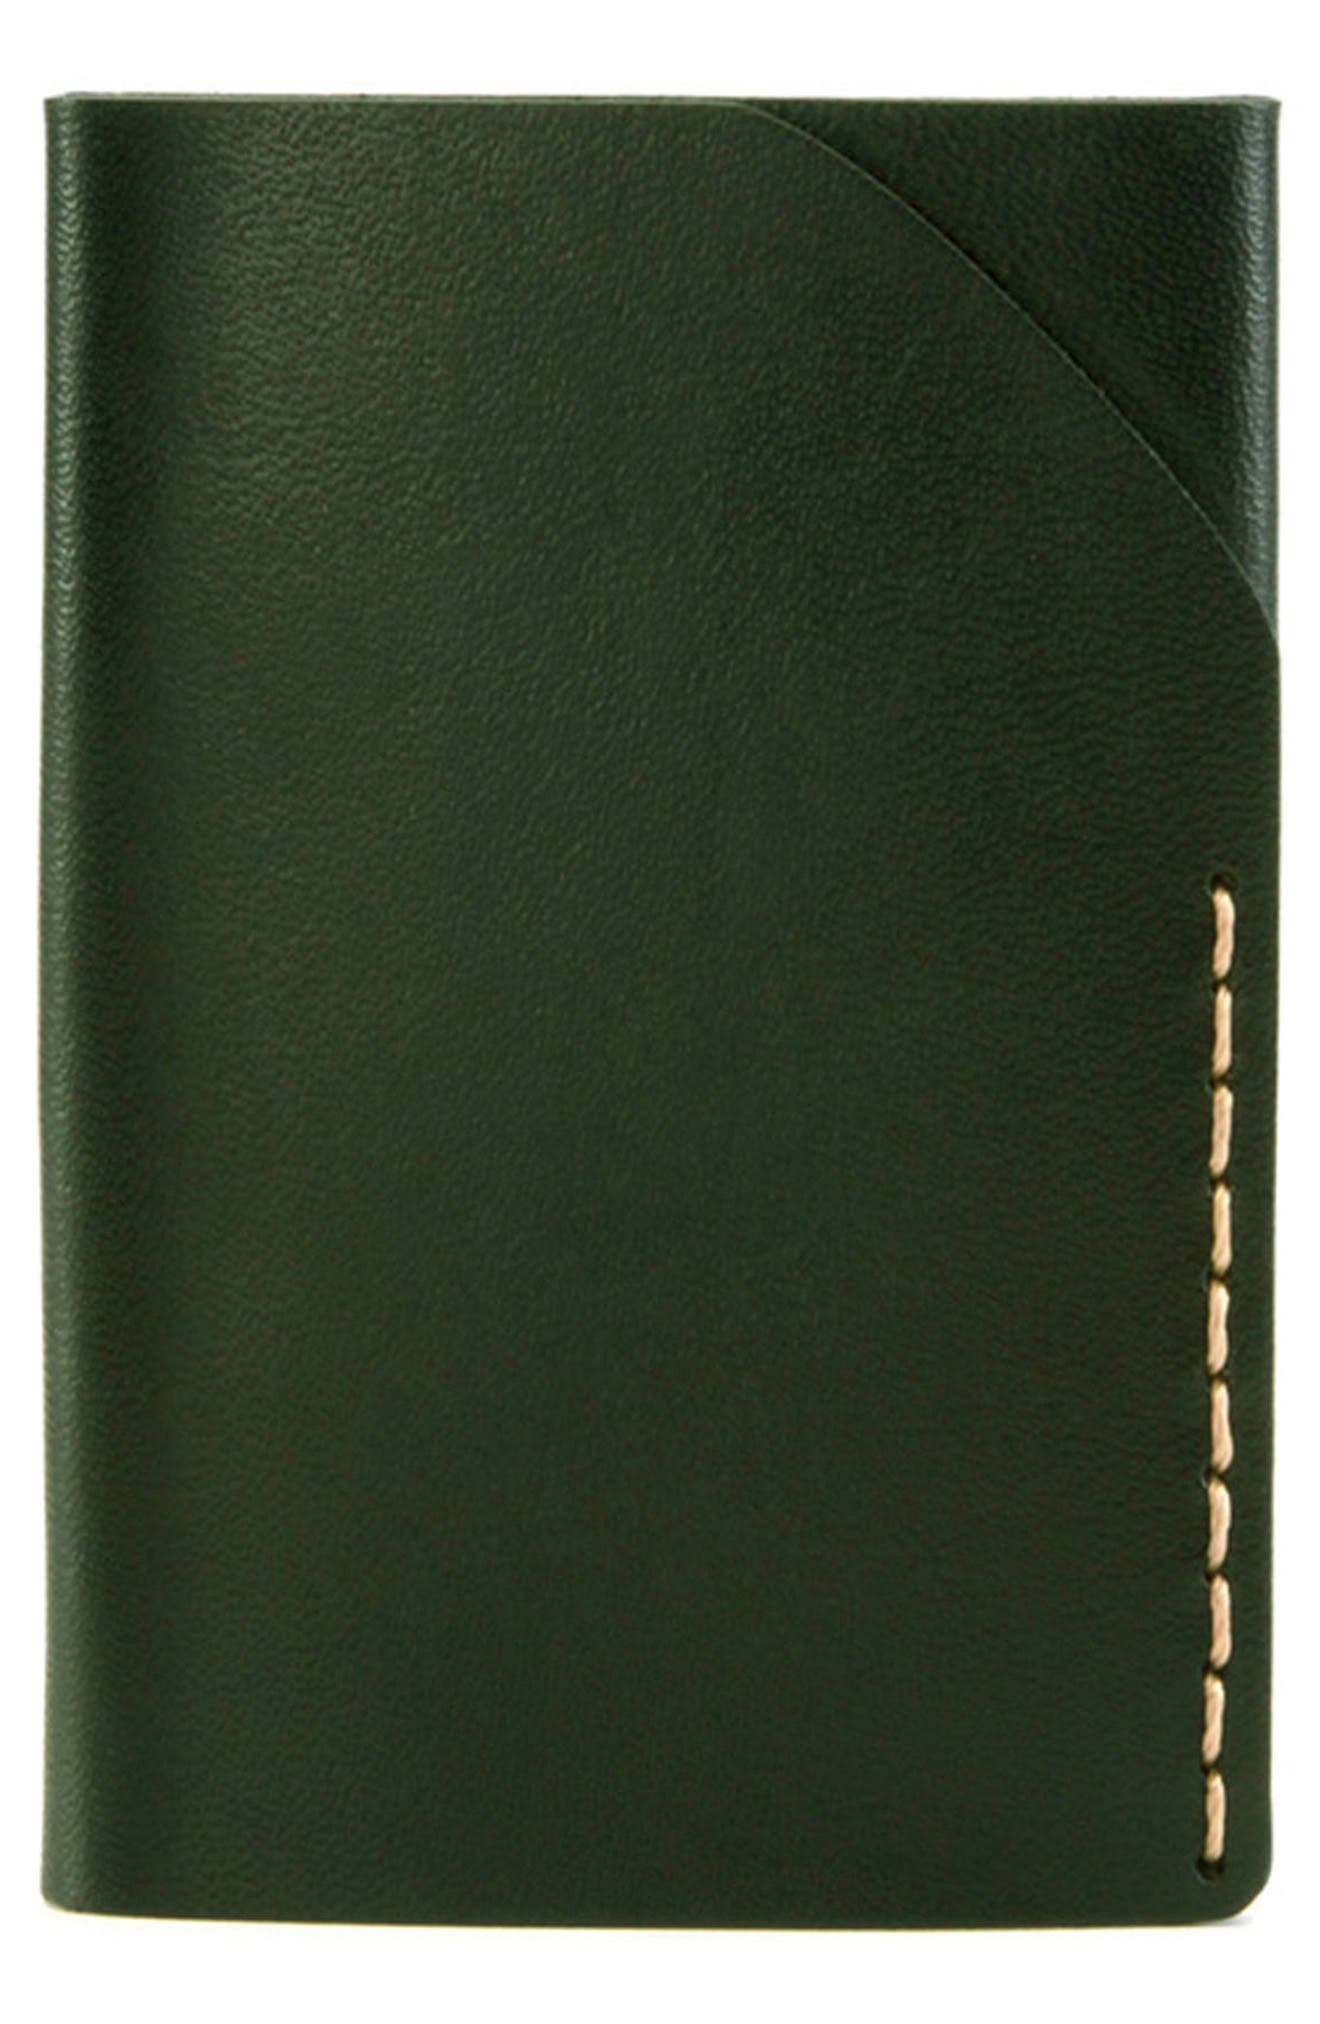 No. 2 Leather Card Case,                         Main,                         color, Green